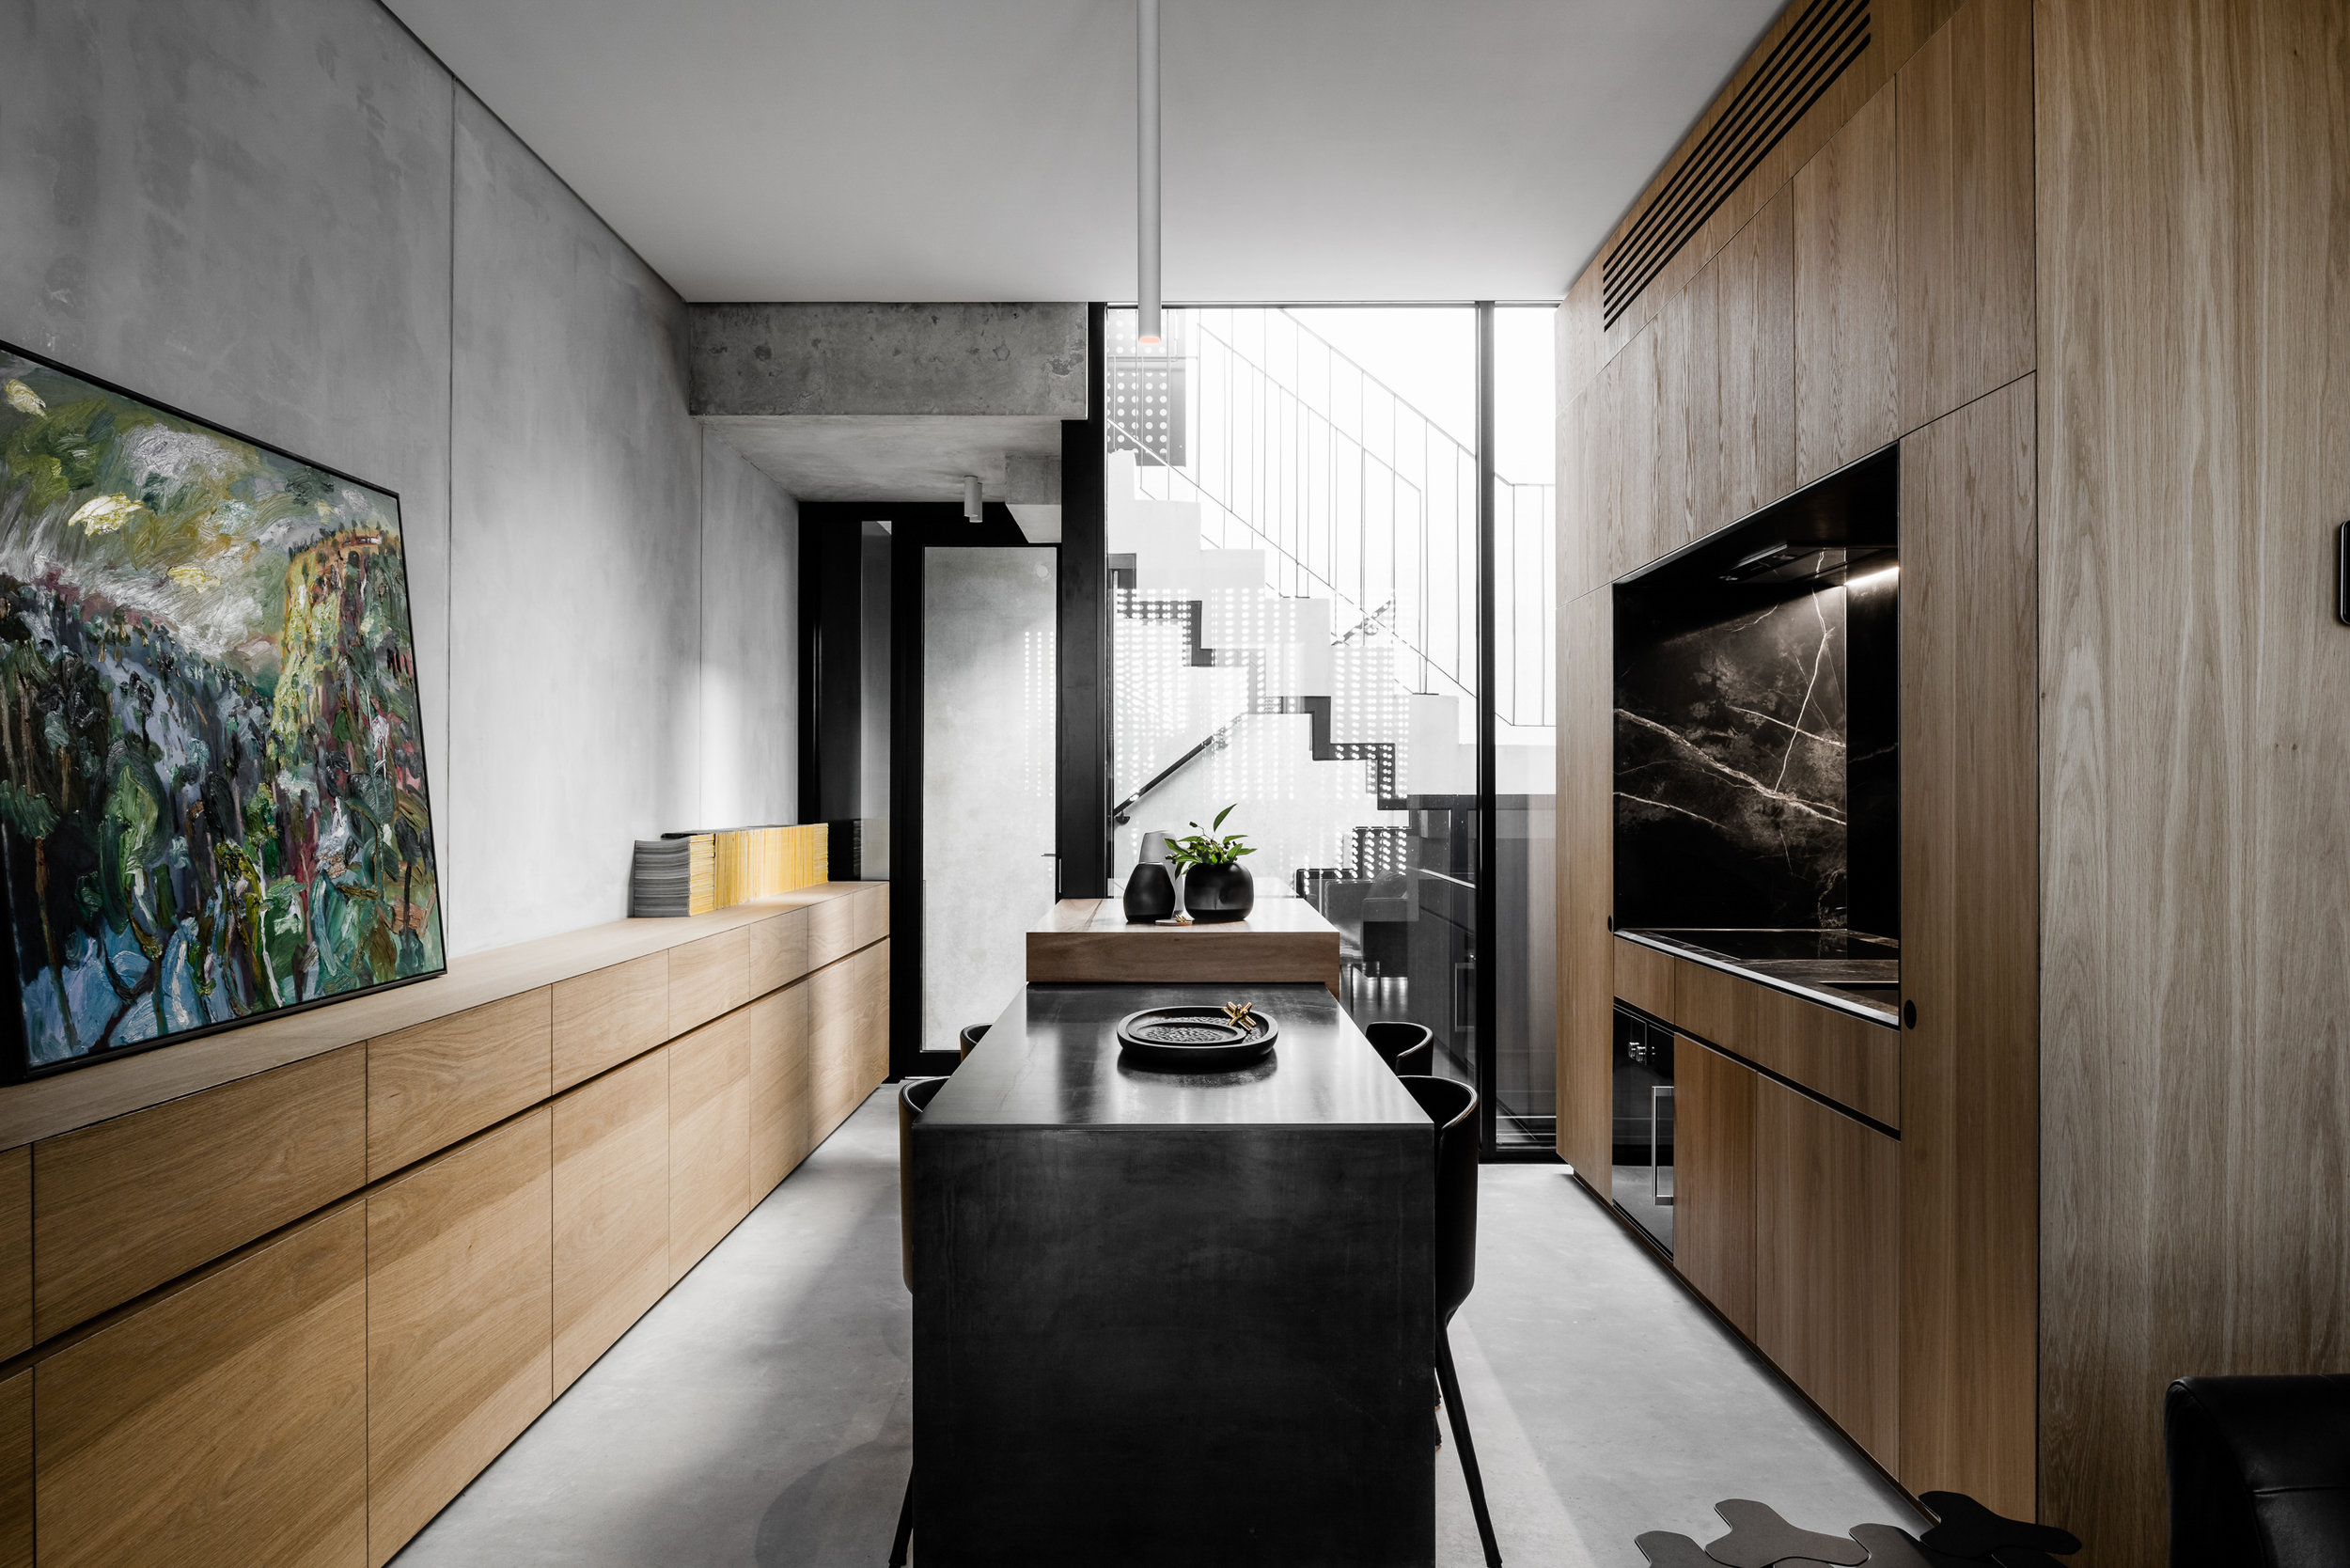 campbell-street-dko-architecture-slab-architecture-the-design-emotive-05.jpg